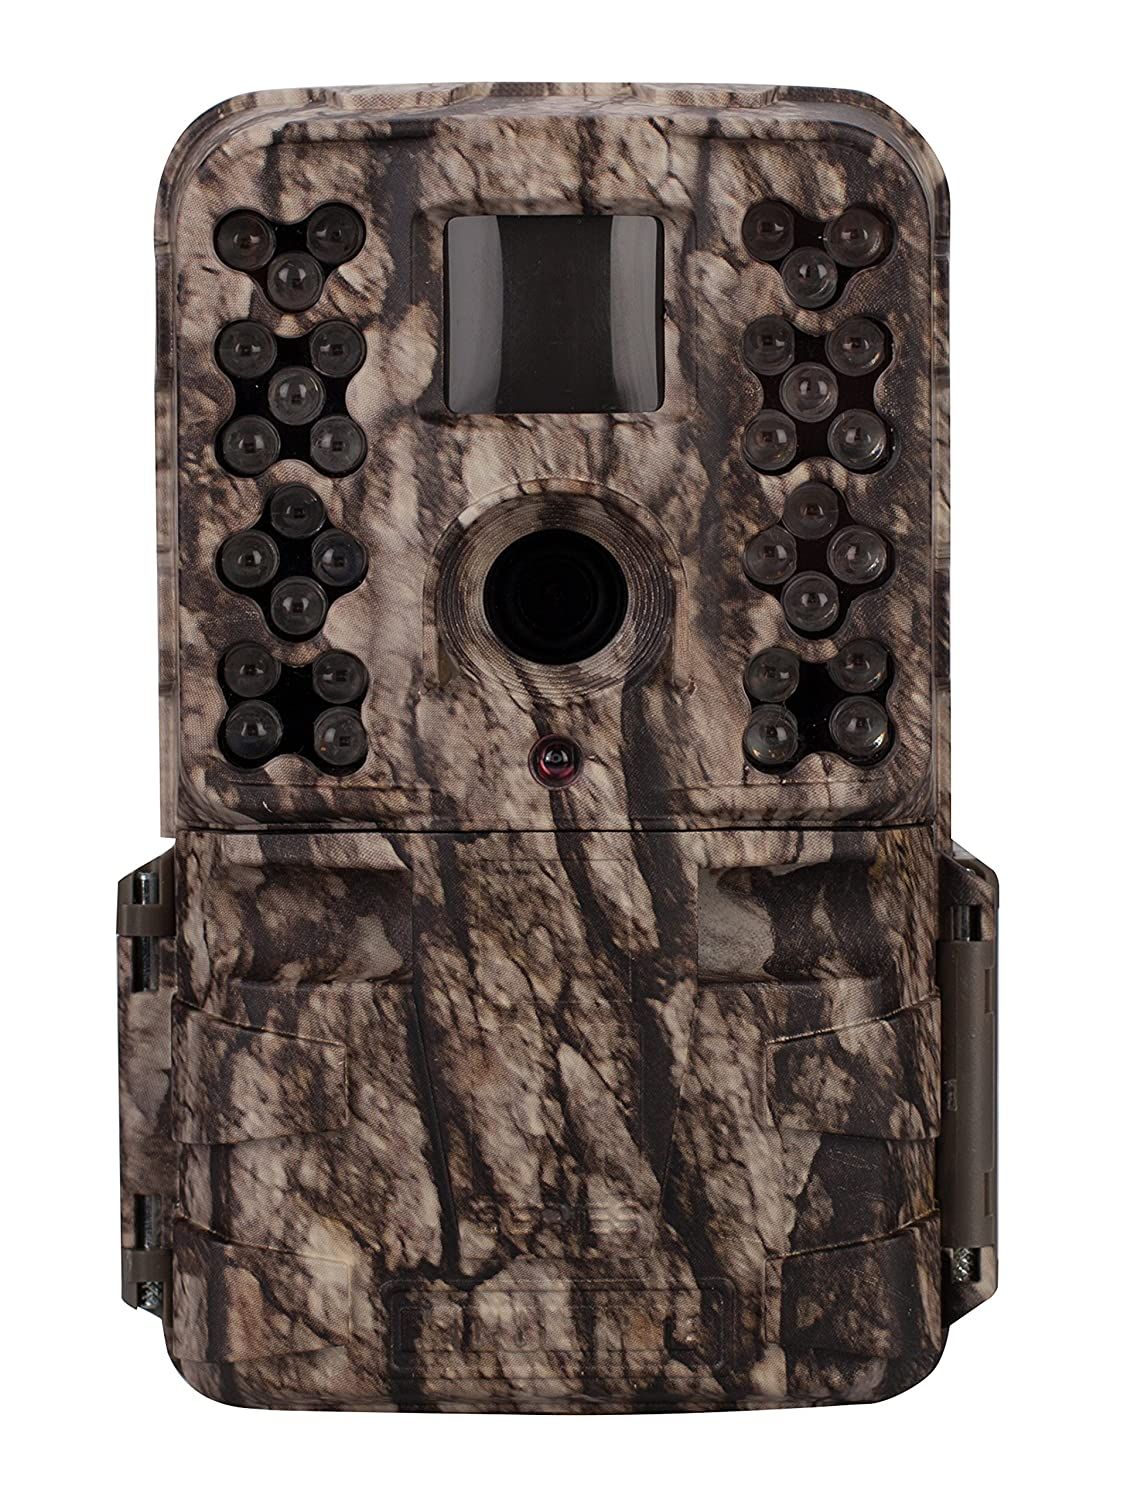 Moultrie M-50i Game Cameras (2018) | M-Series| 20 MP | 0.3 S Trigger Speed | 1080p Video with Audio | MOU Mobile Compatible, Moultrie Pine MCG-13270